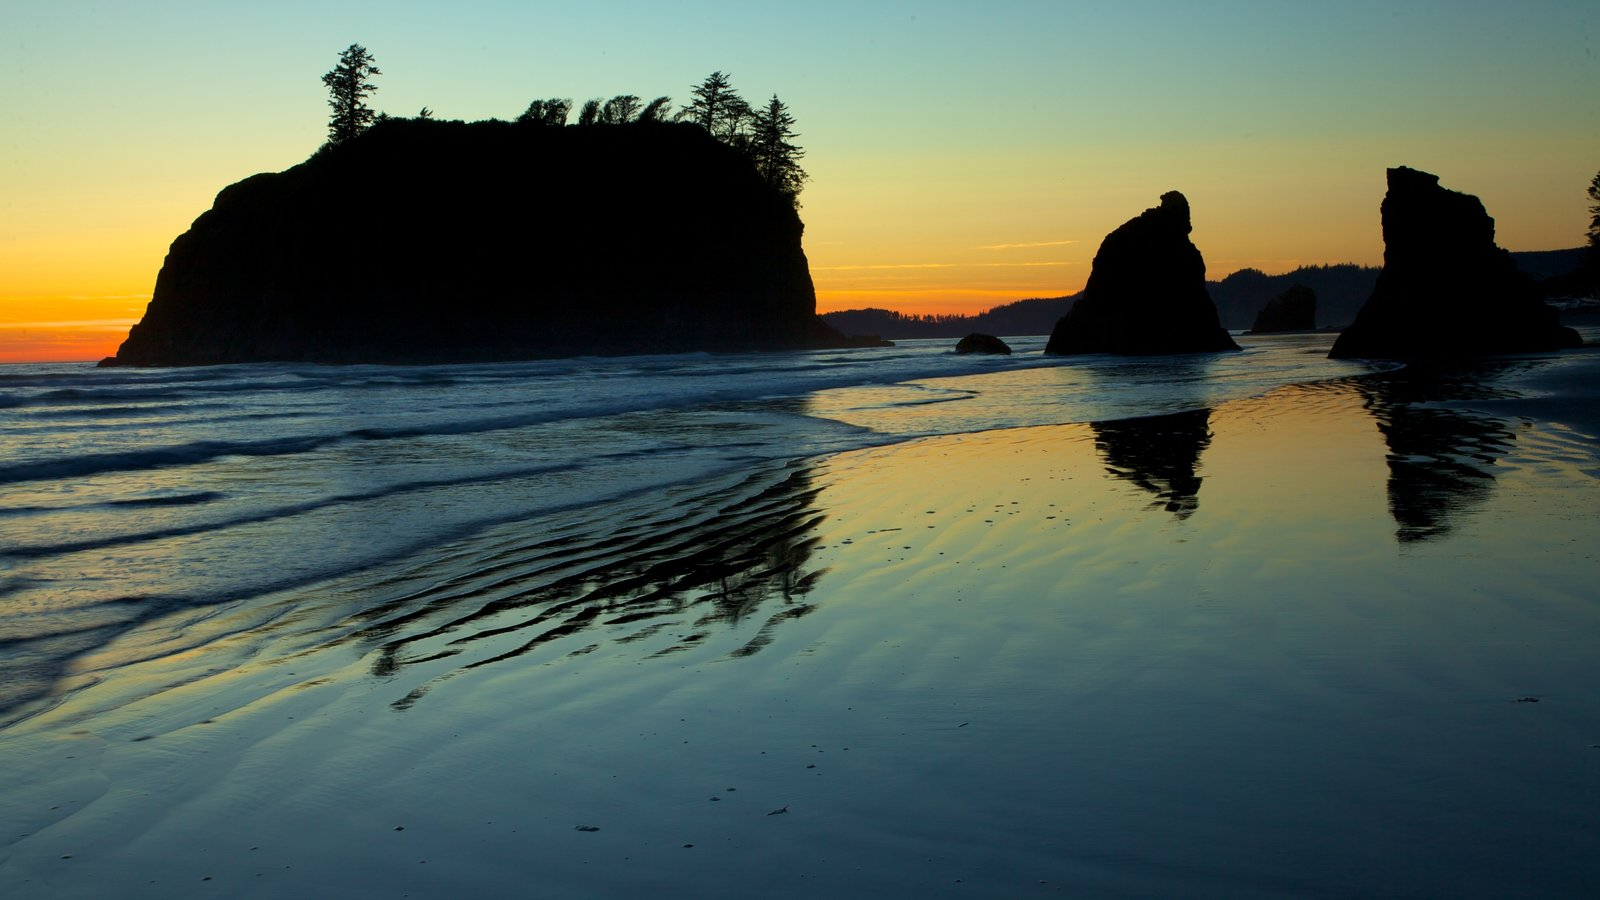 Washington Coast showing a sunset, general coastal views and landscape views